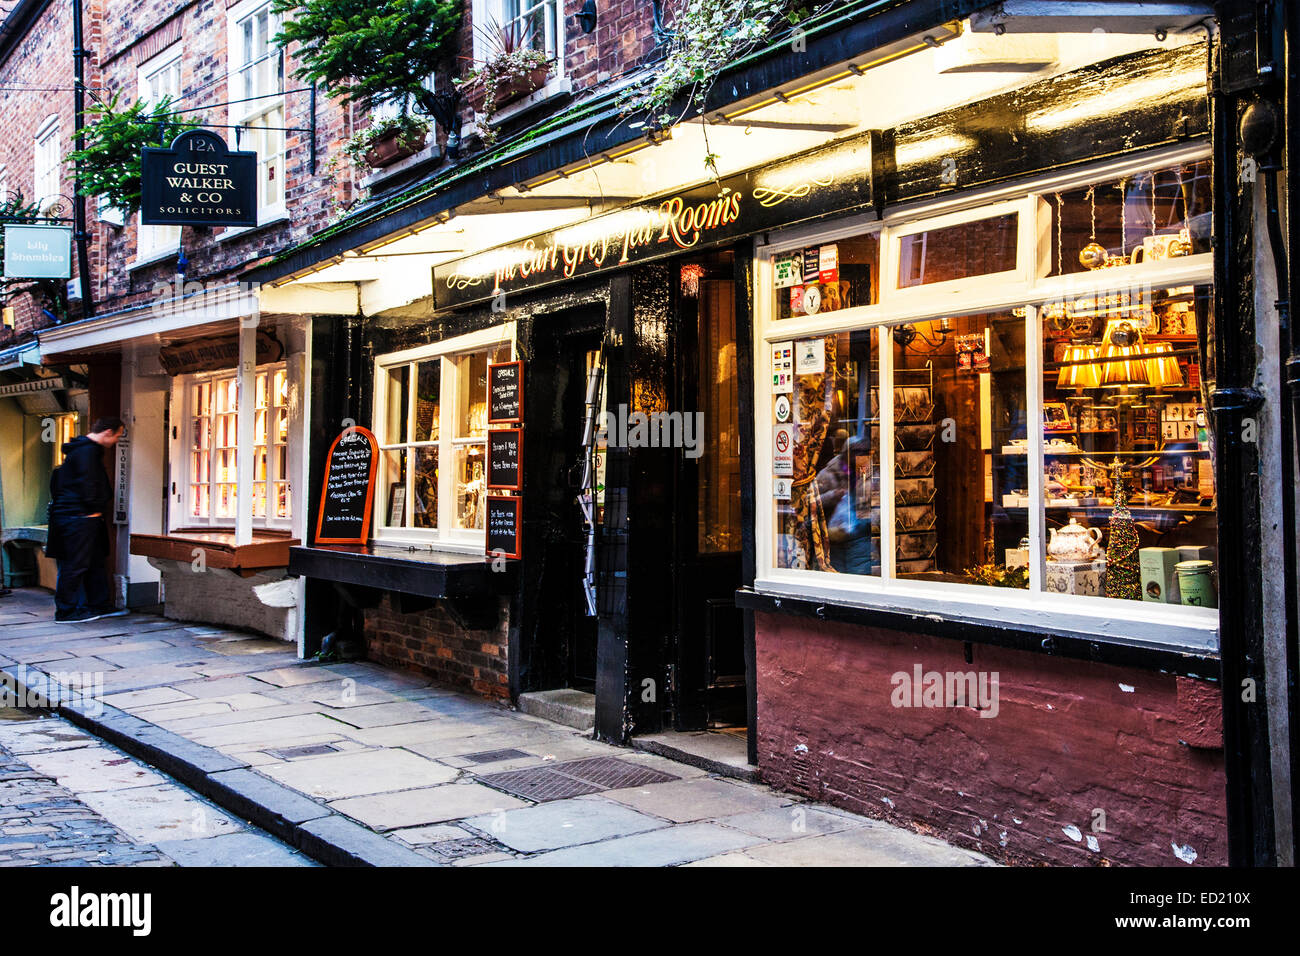 The Shambles, the historic, medieval street in the old city centre of York. - Stock Image